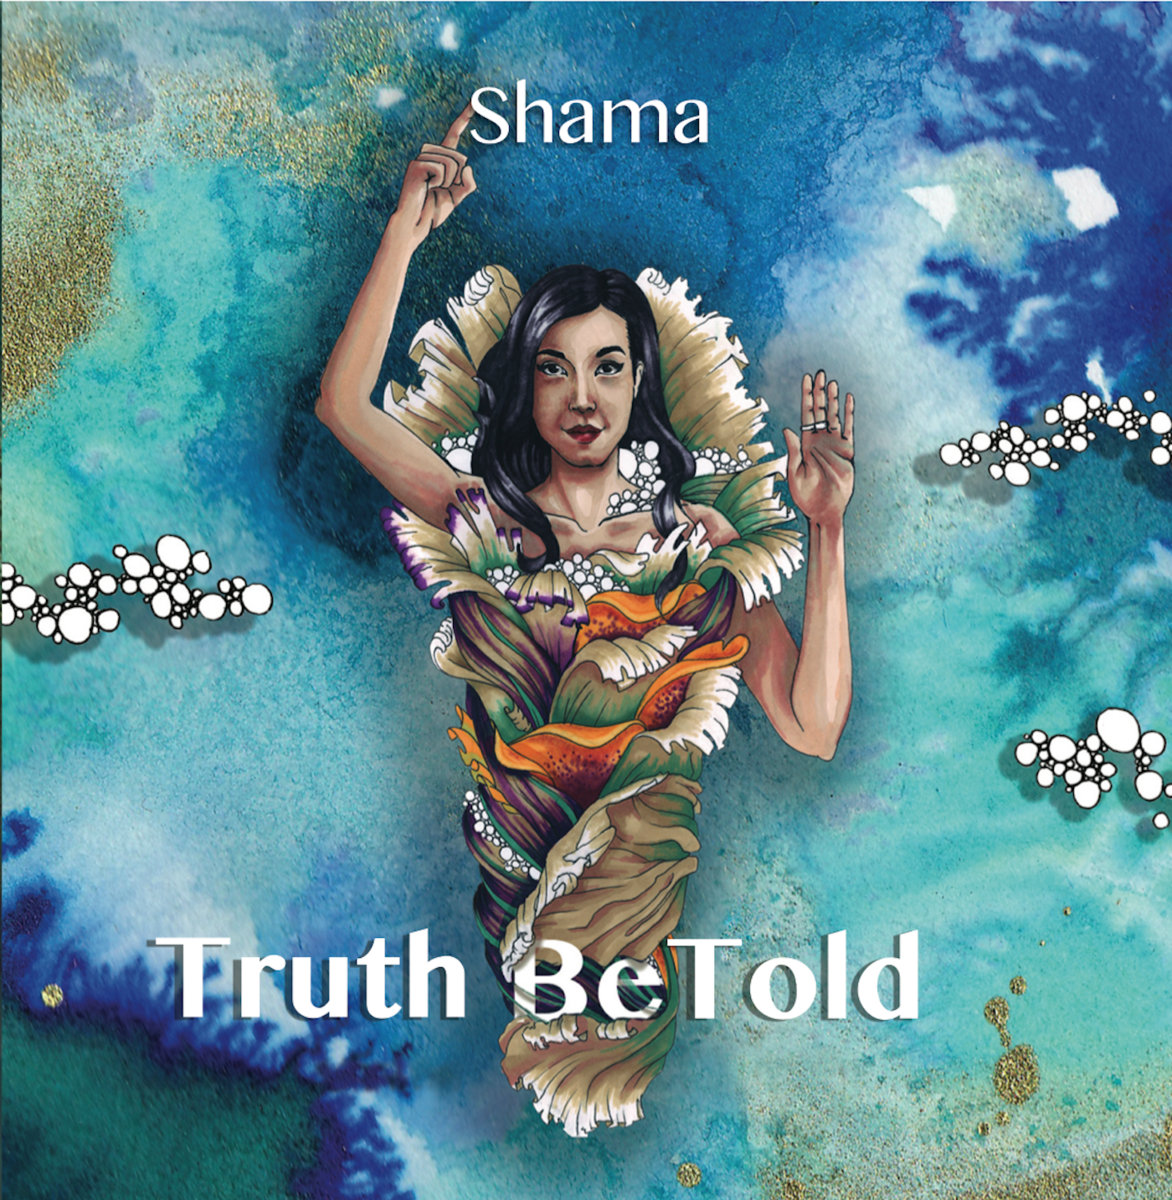 Watch Shama Rahman video